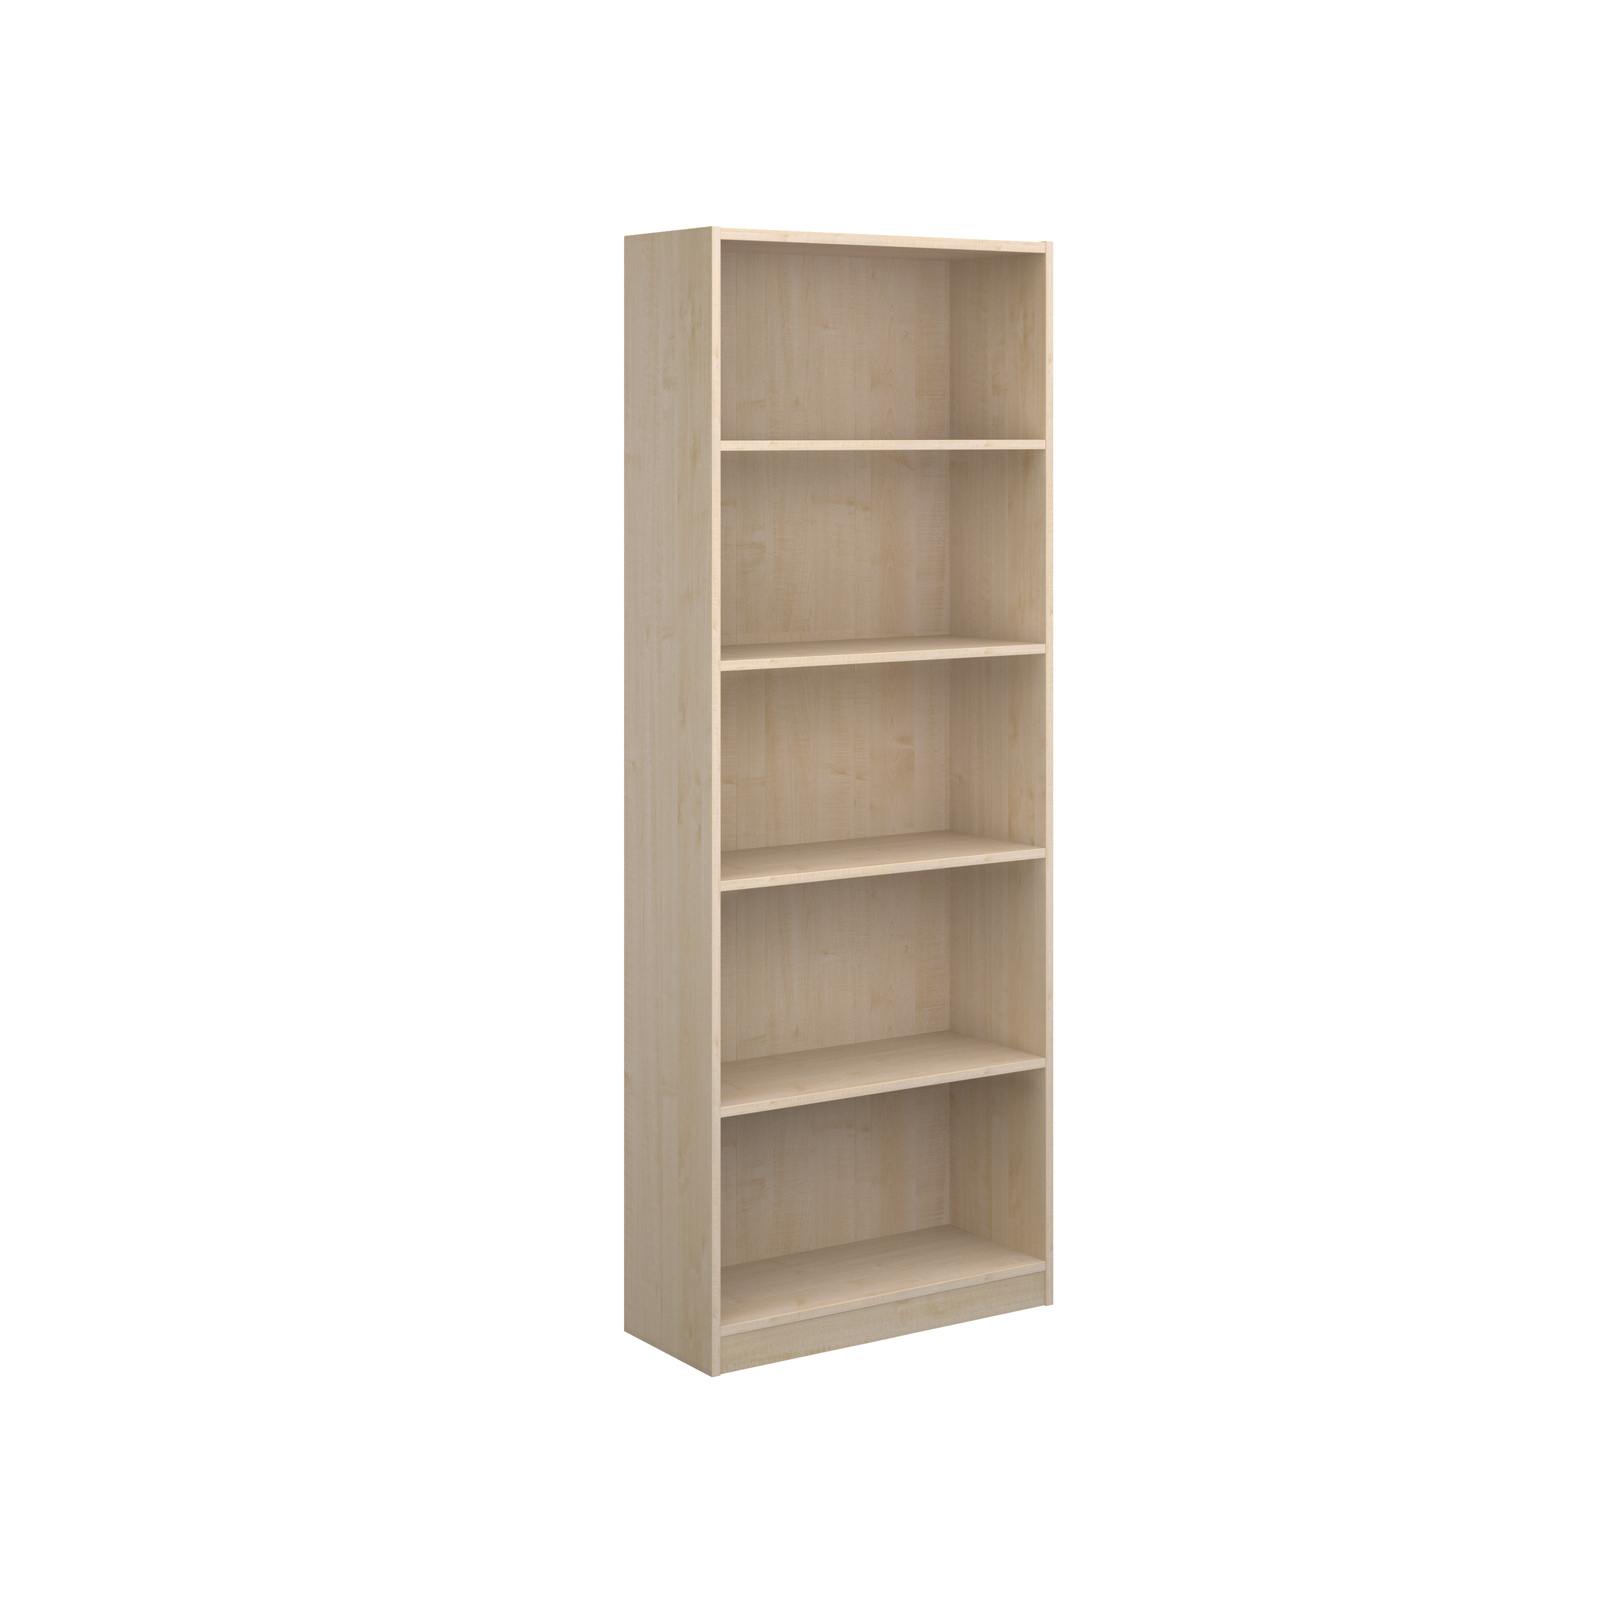 Economy bookcase 2004mm high with 4 shelves - maple